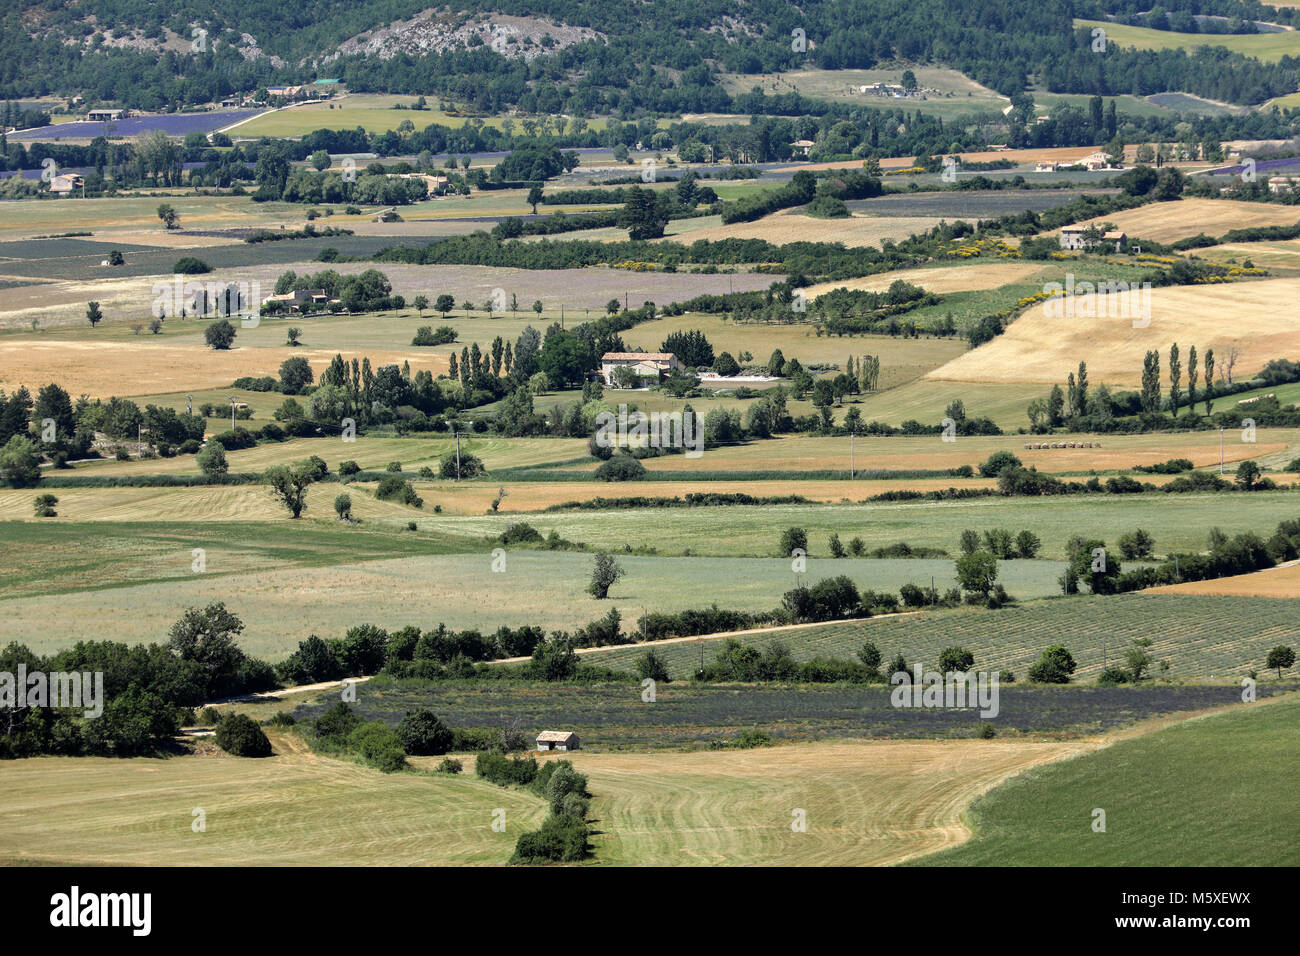 Patchwork of Farmer's fields in valley below Sault, Provence France - Stock Image